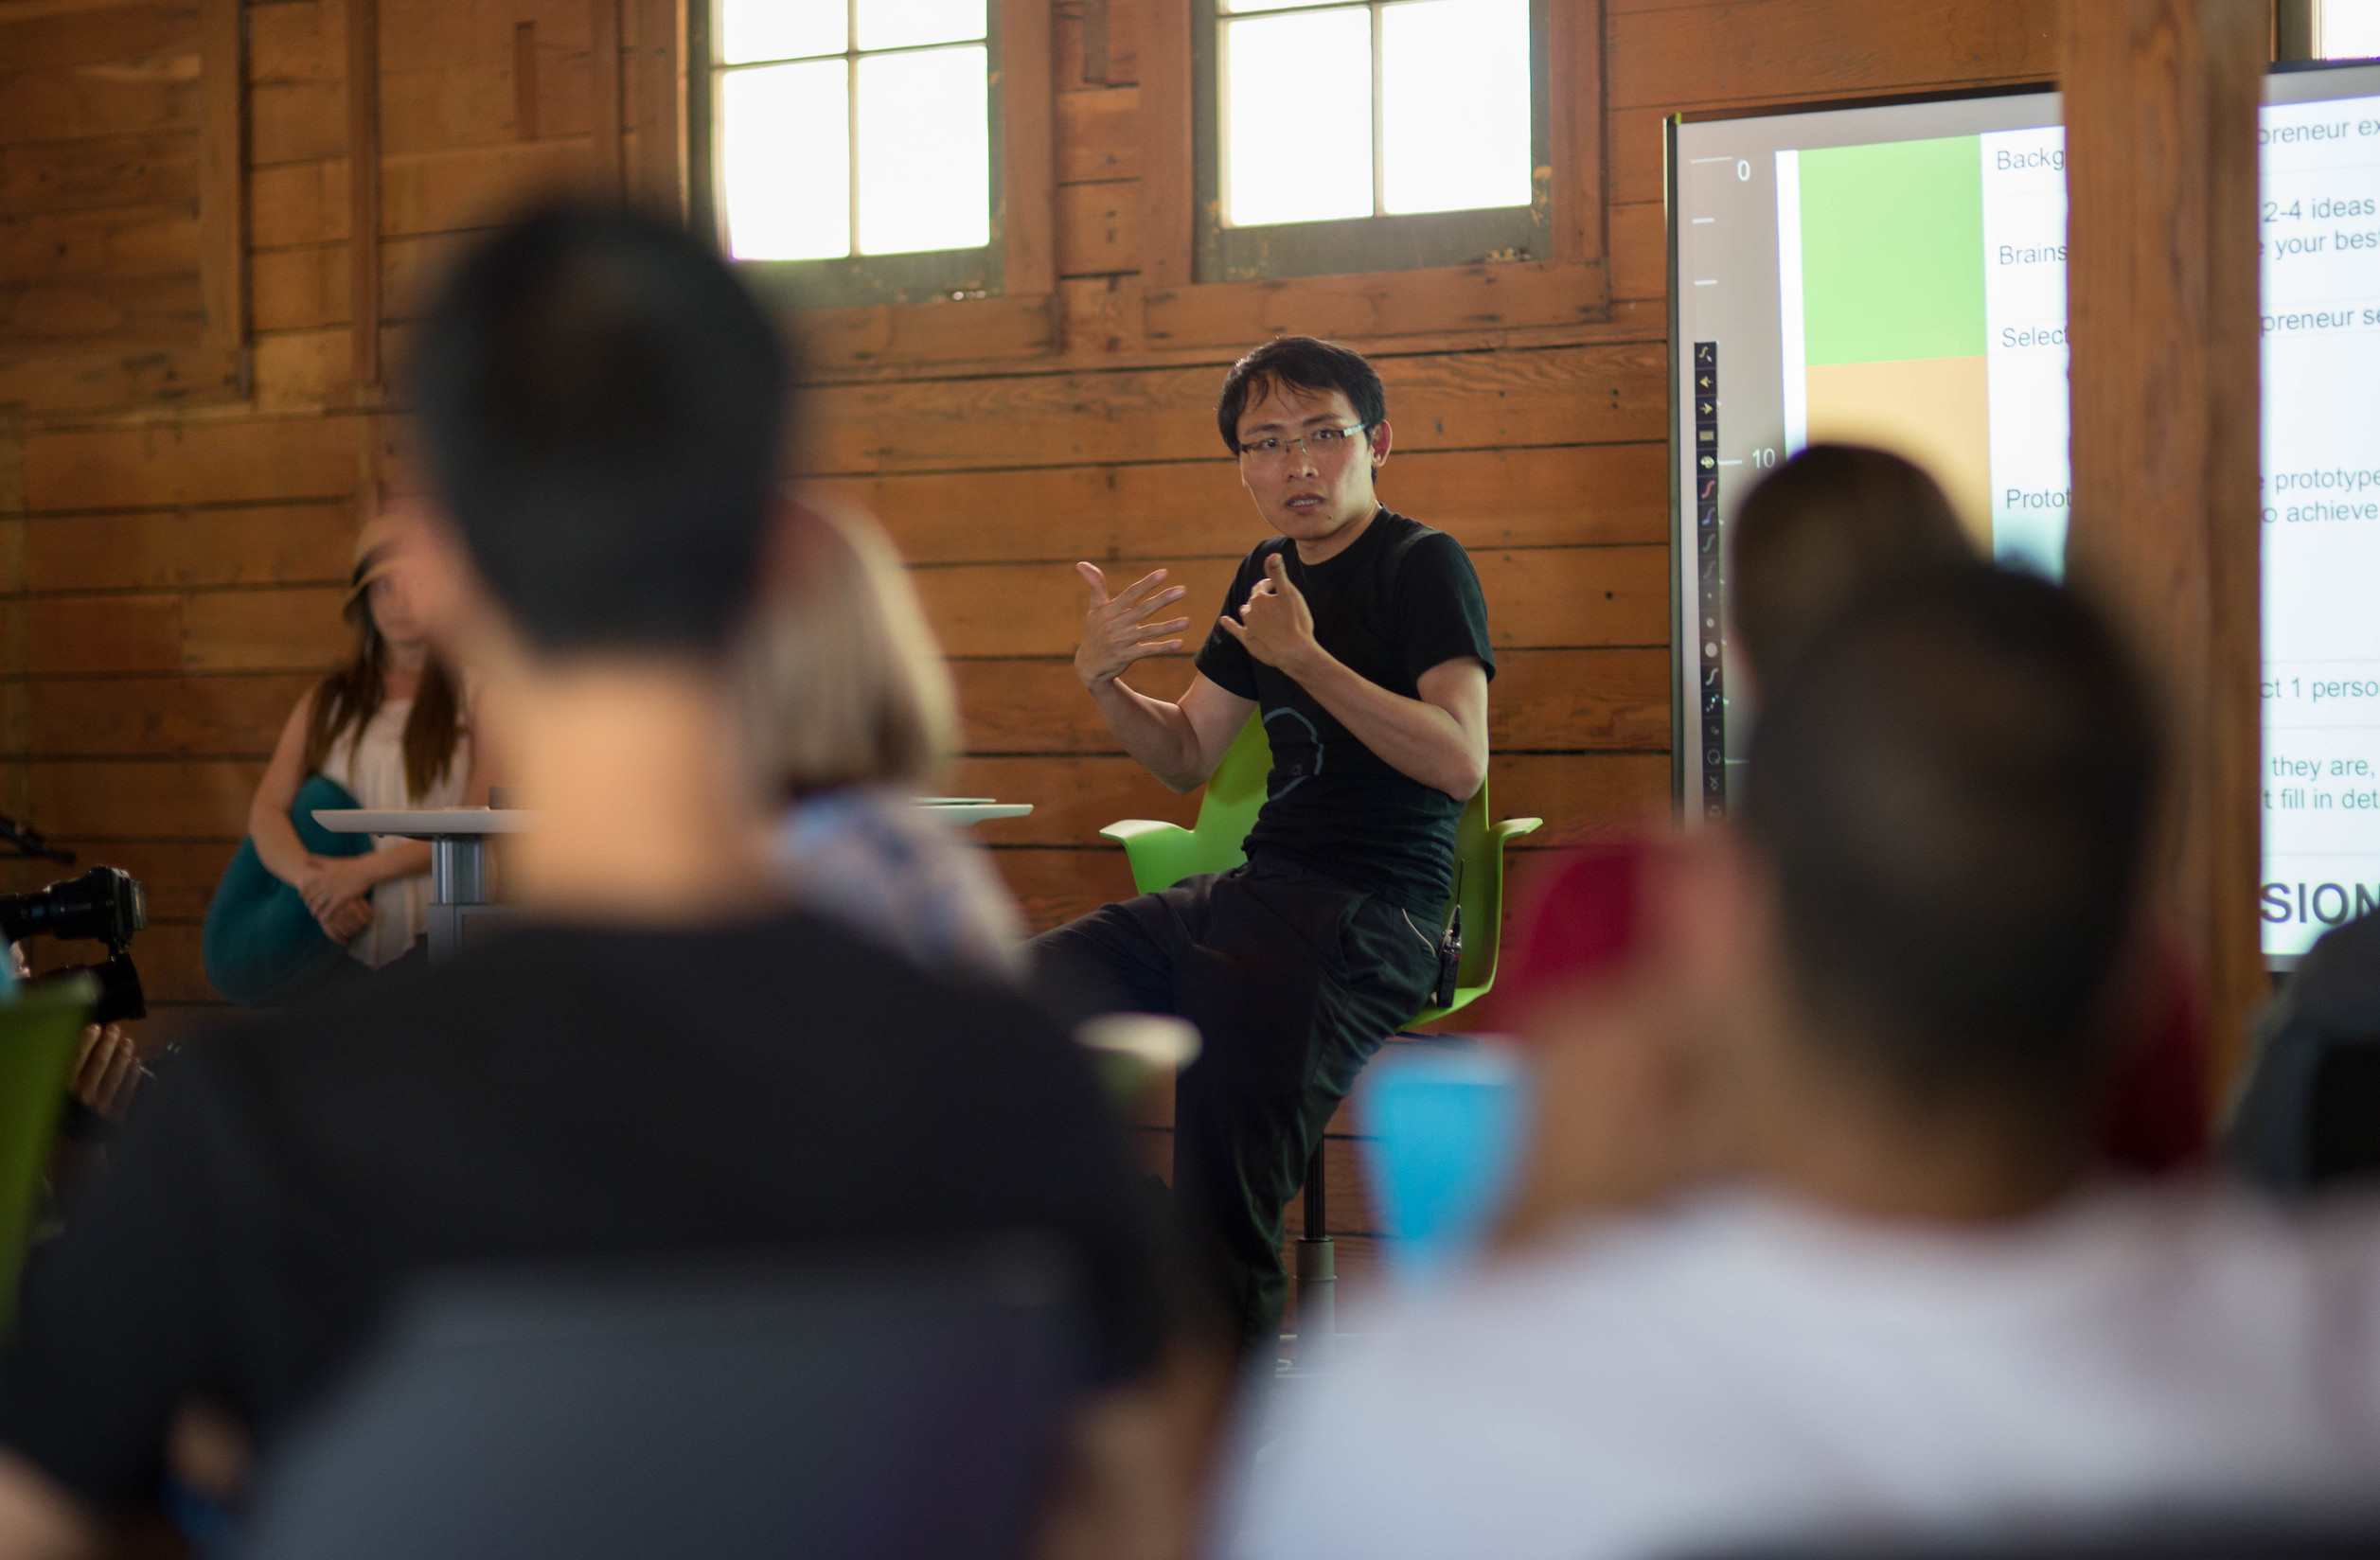 Tom Chi leading a rapid prototyping workshop // Photo by Caitlin Kleiboer